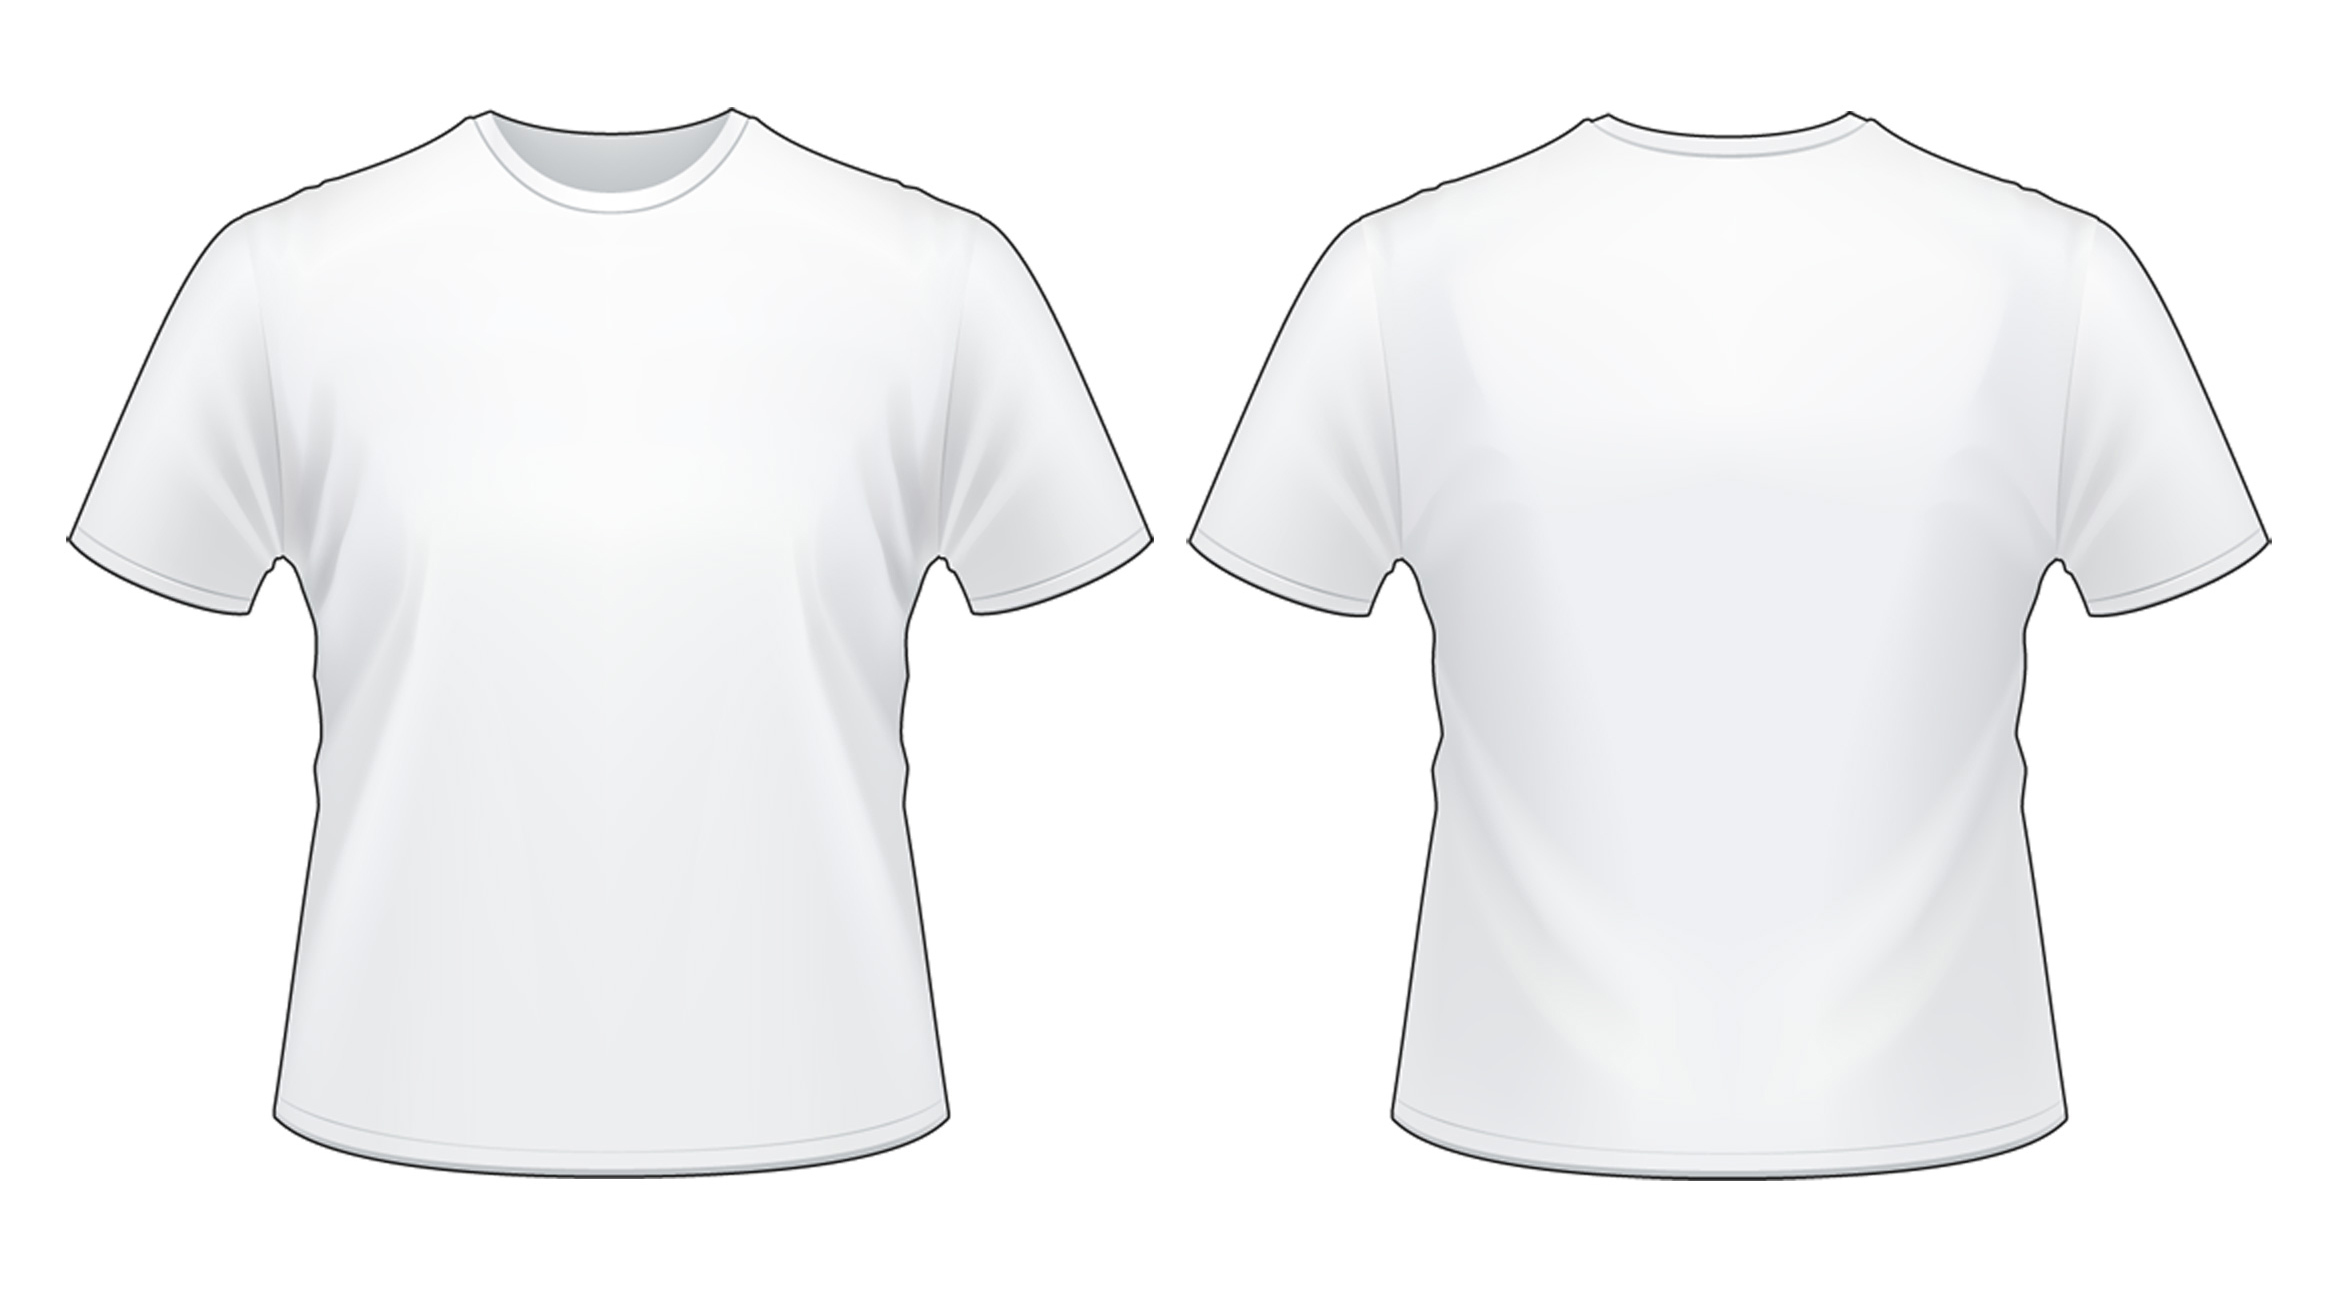 Design t shirts of your own - Why Make Your Own T Shirt Design